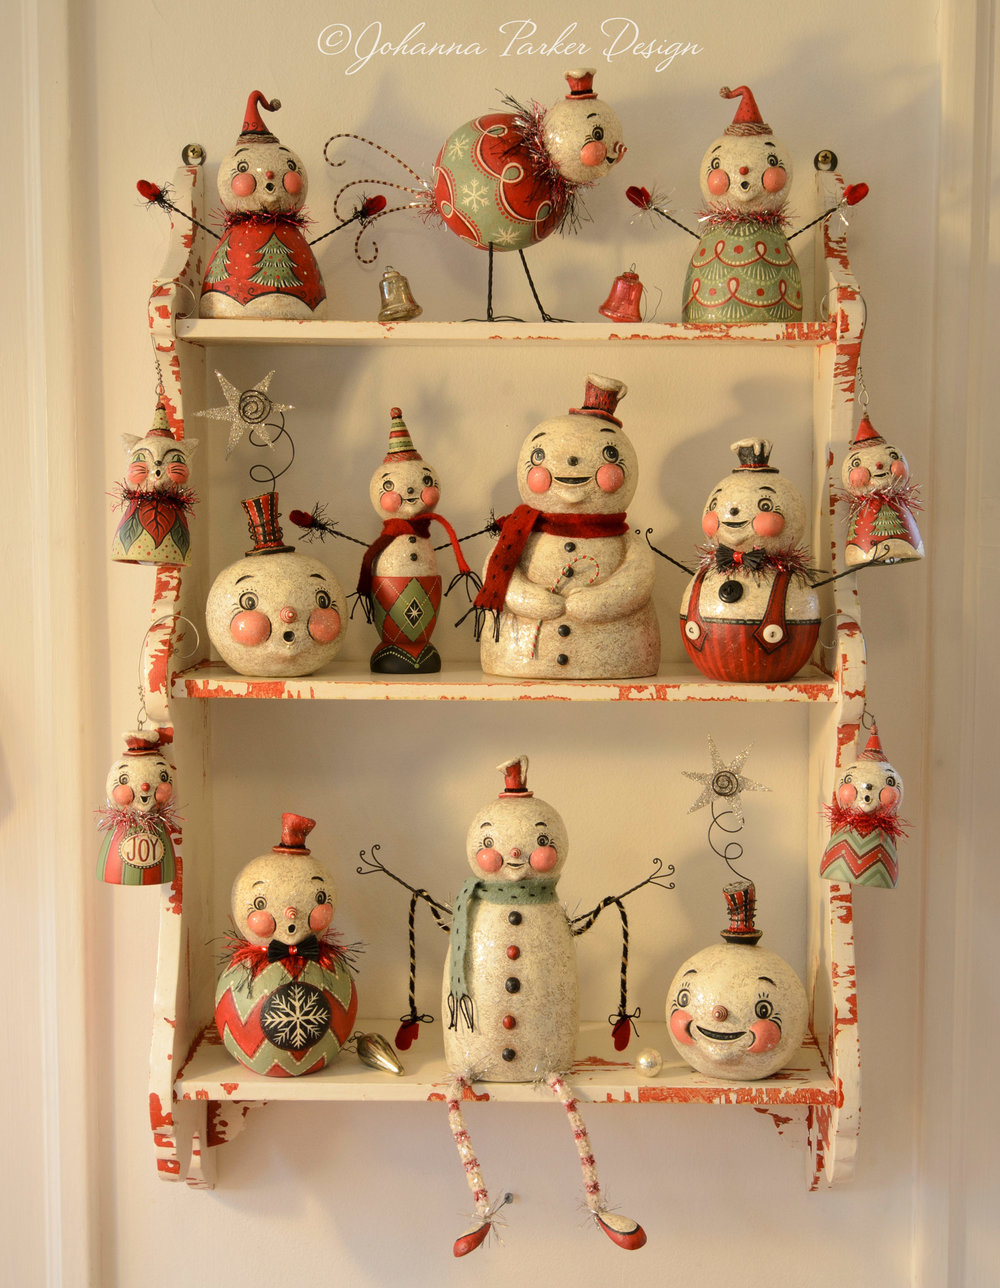 Holiday folk art shelf collection